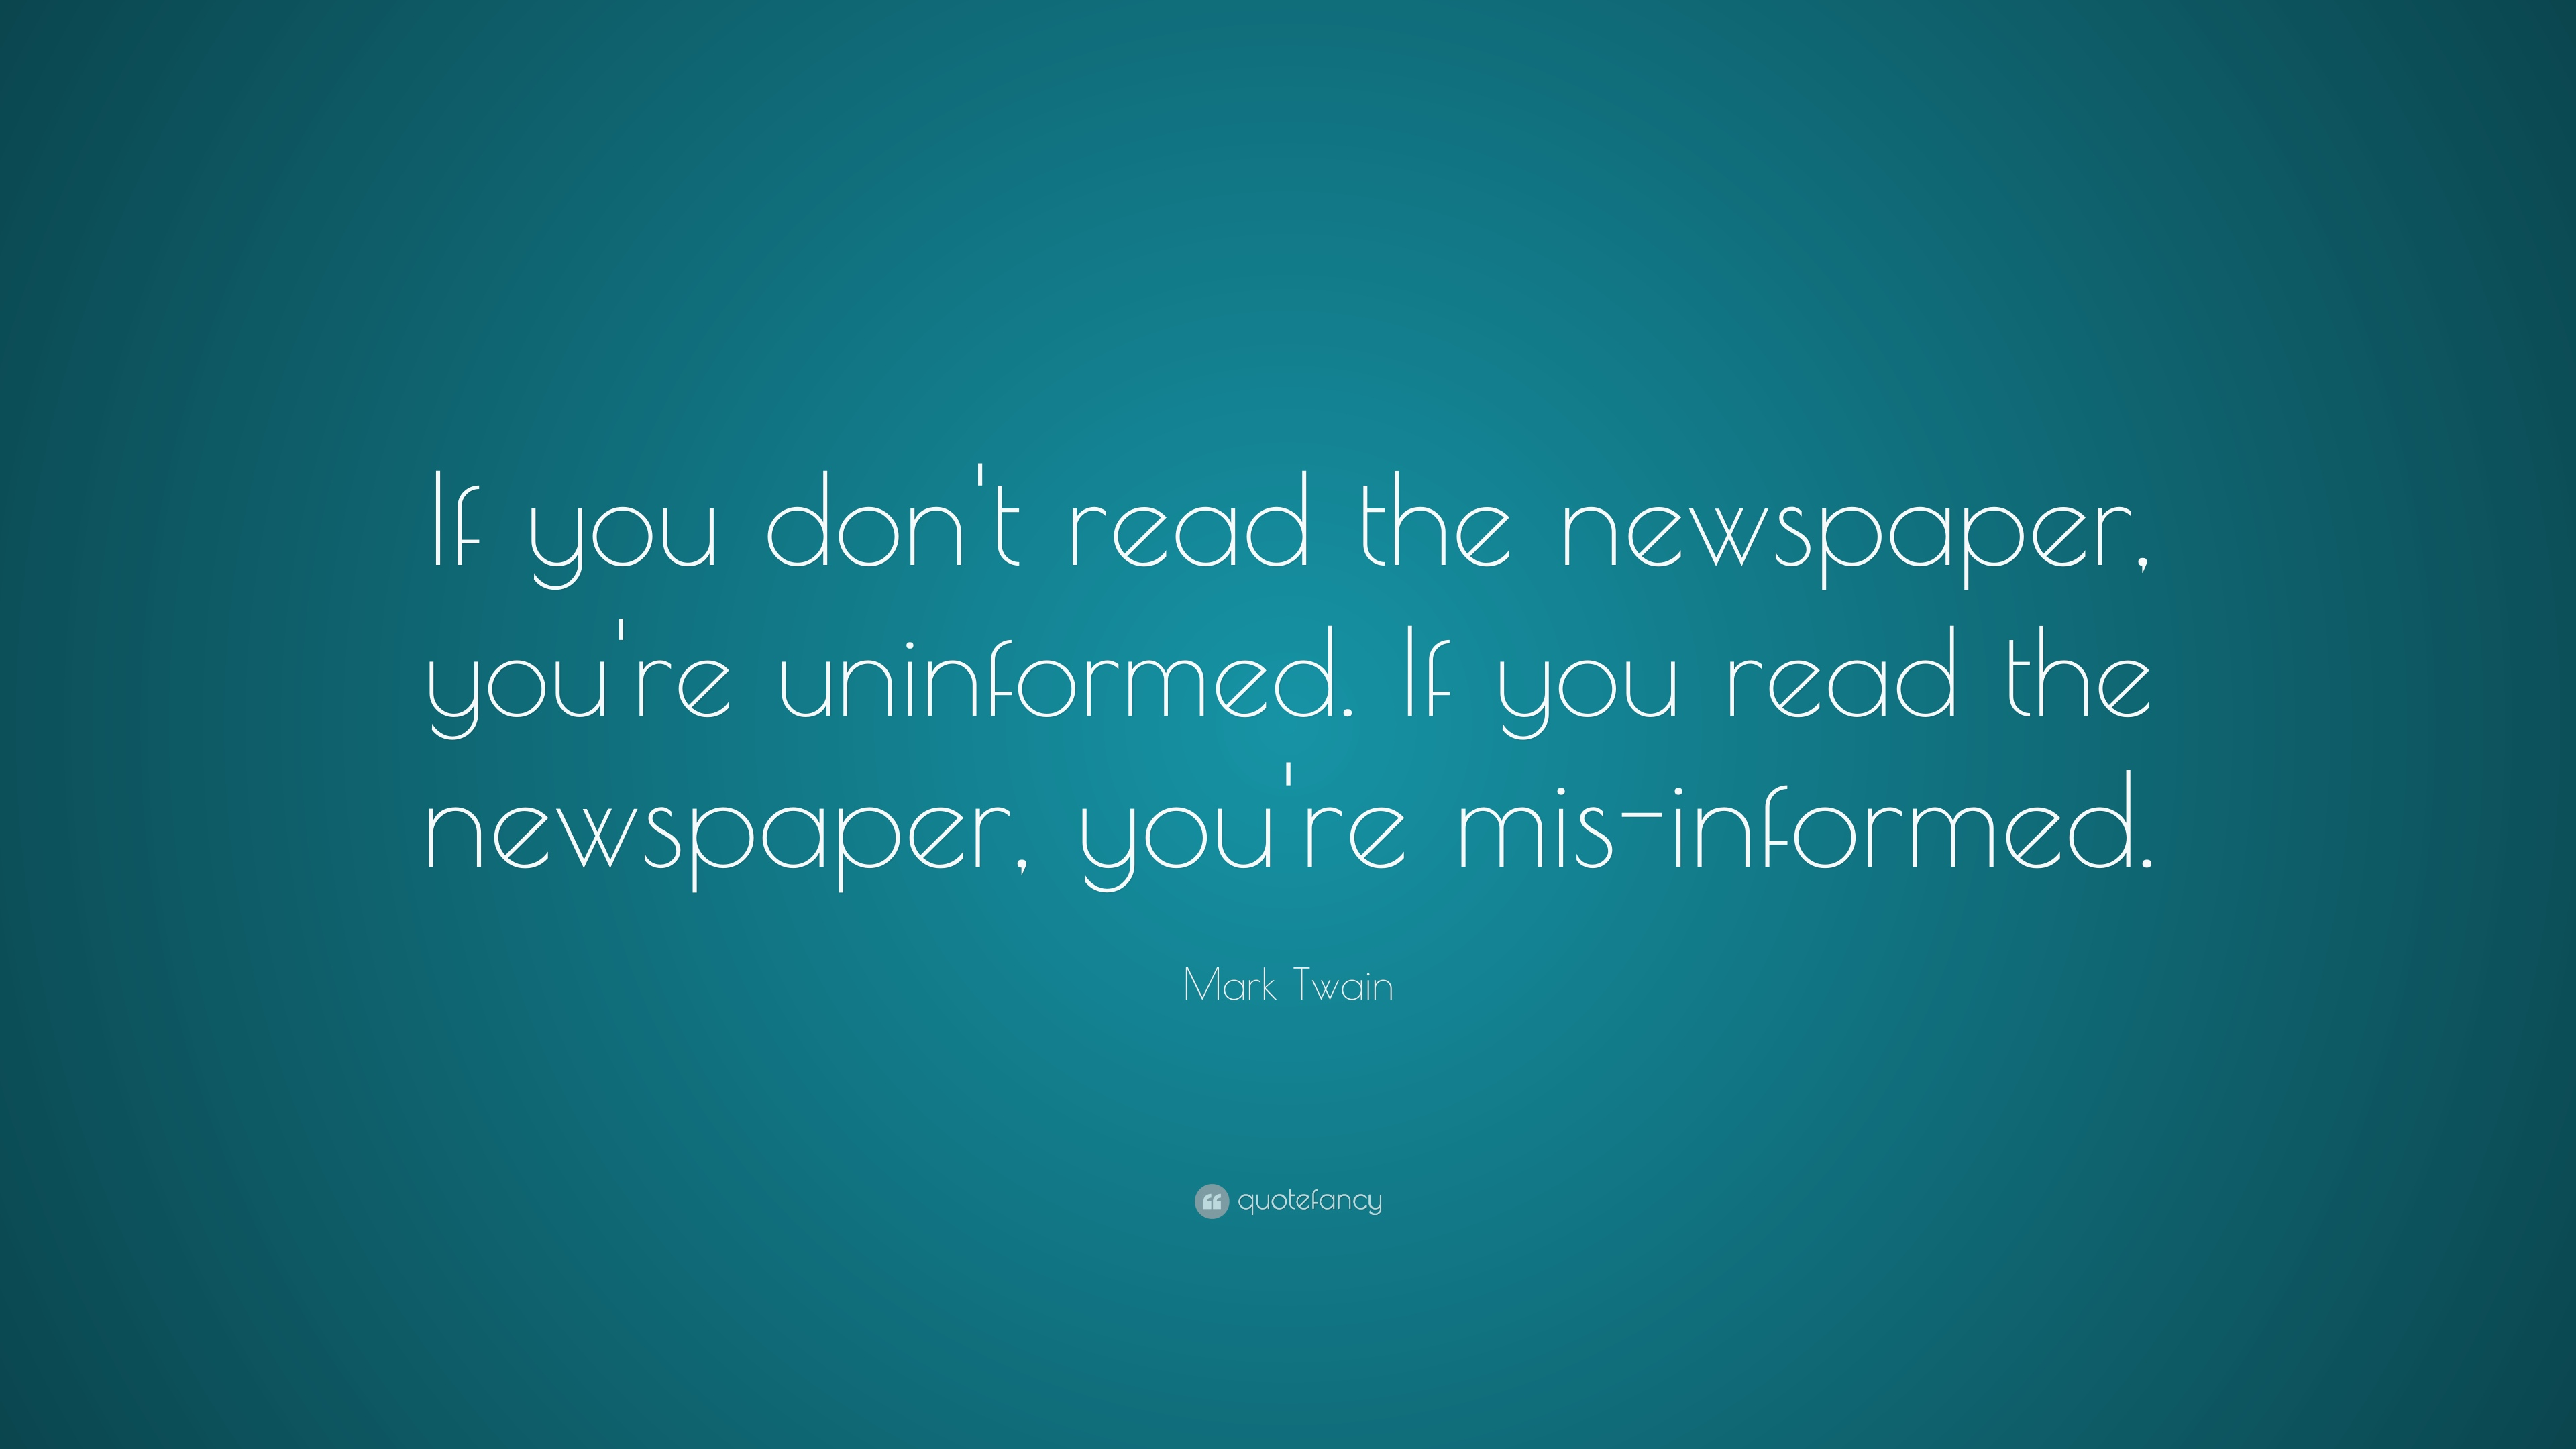 Mark Twain Quote If You Don T Read The Newspaper You Re Uninformed If You Read The Newspaper